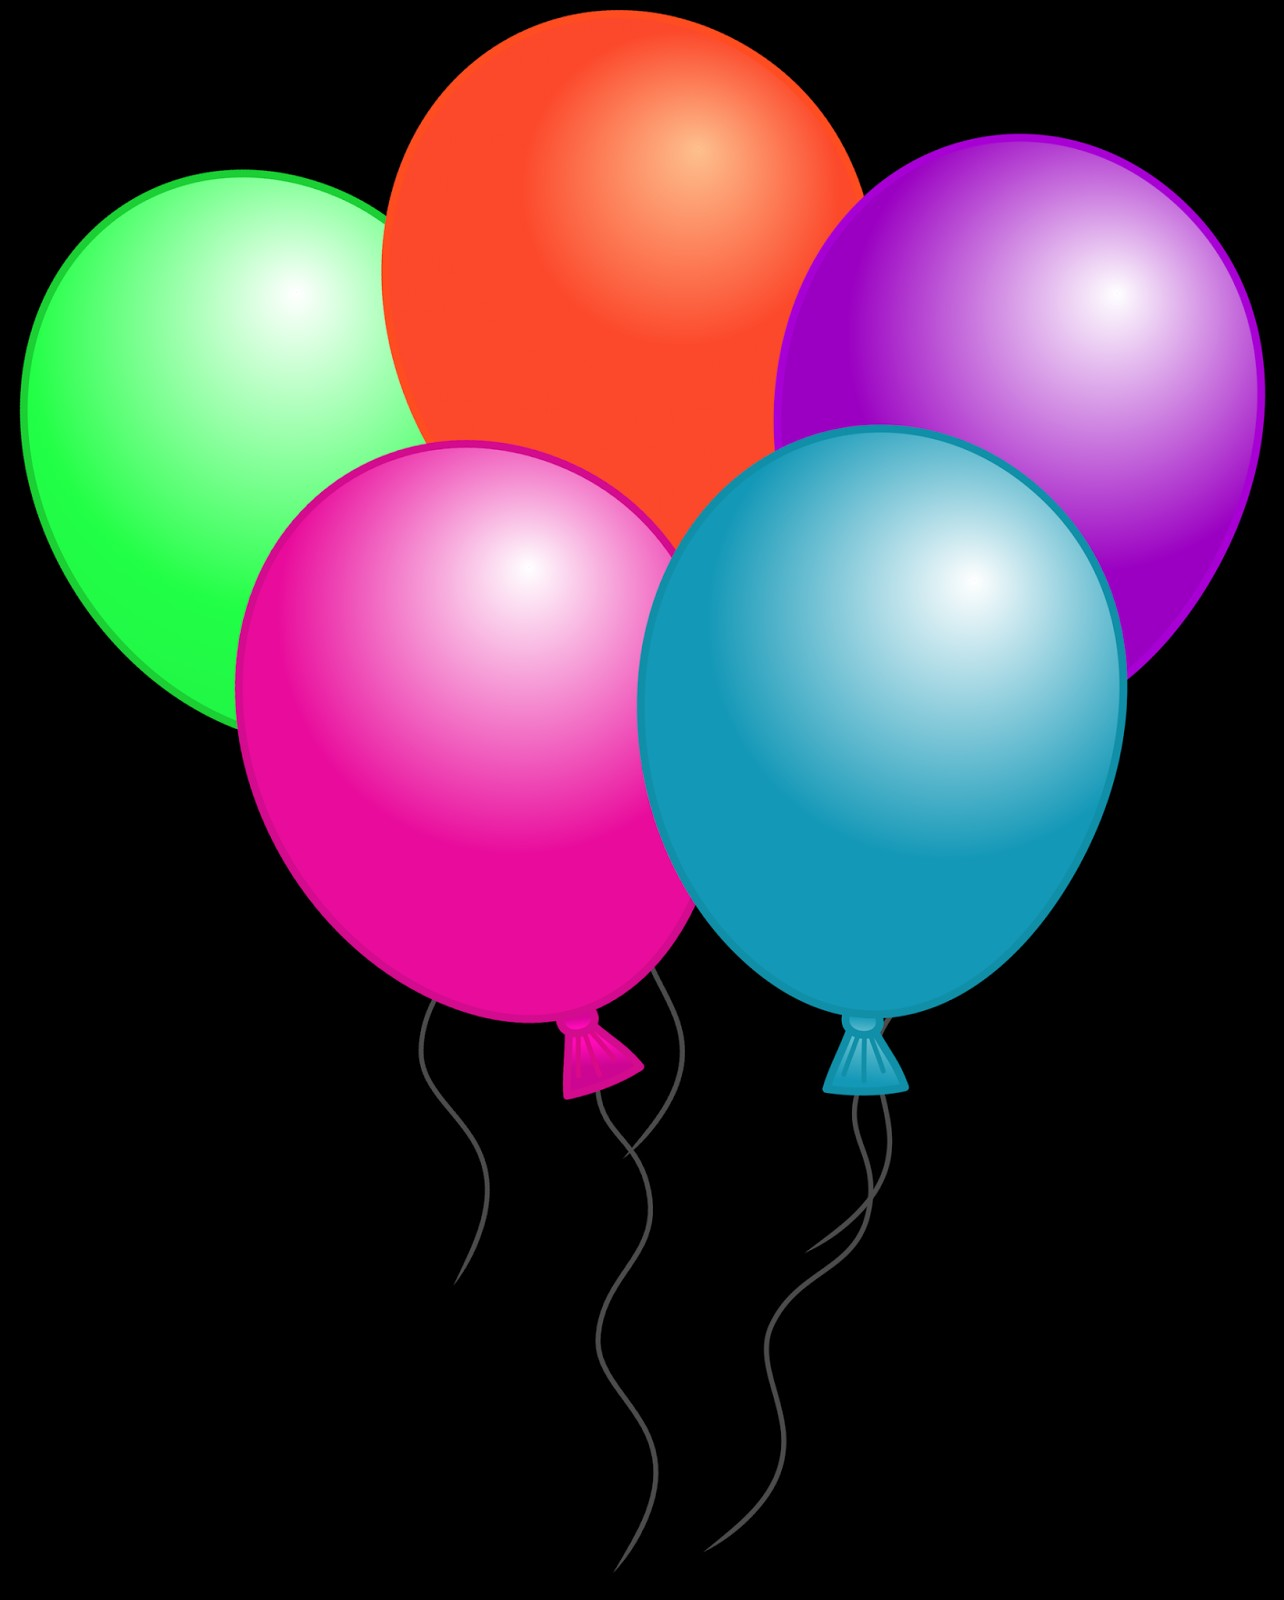 1284x1600 Balloon clipart black background